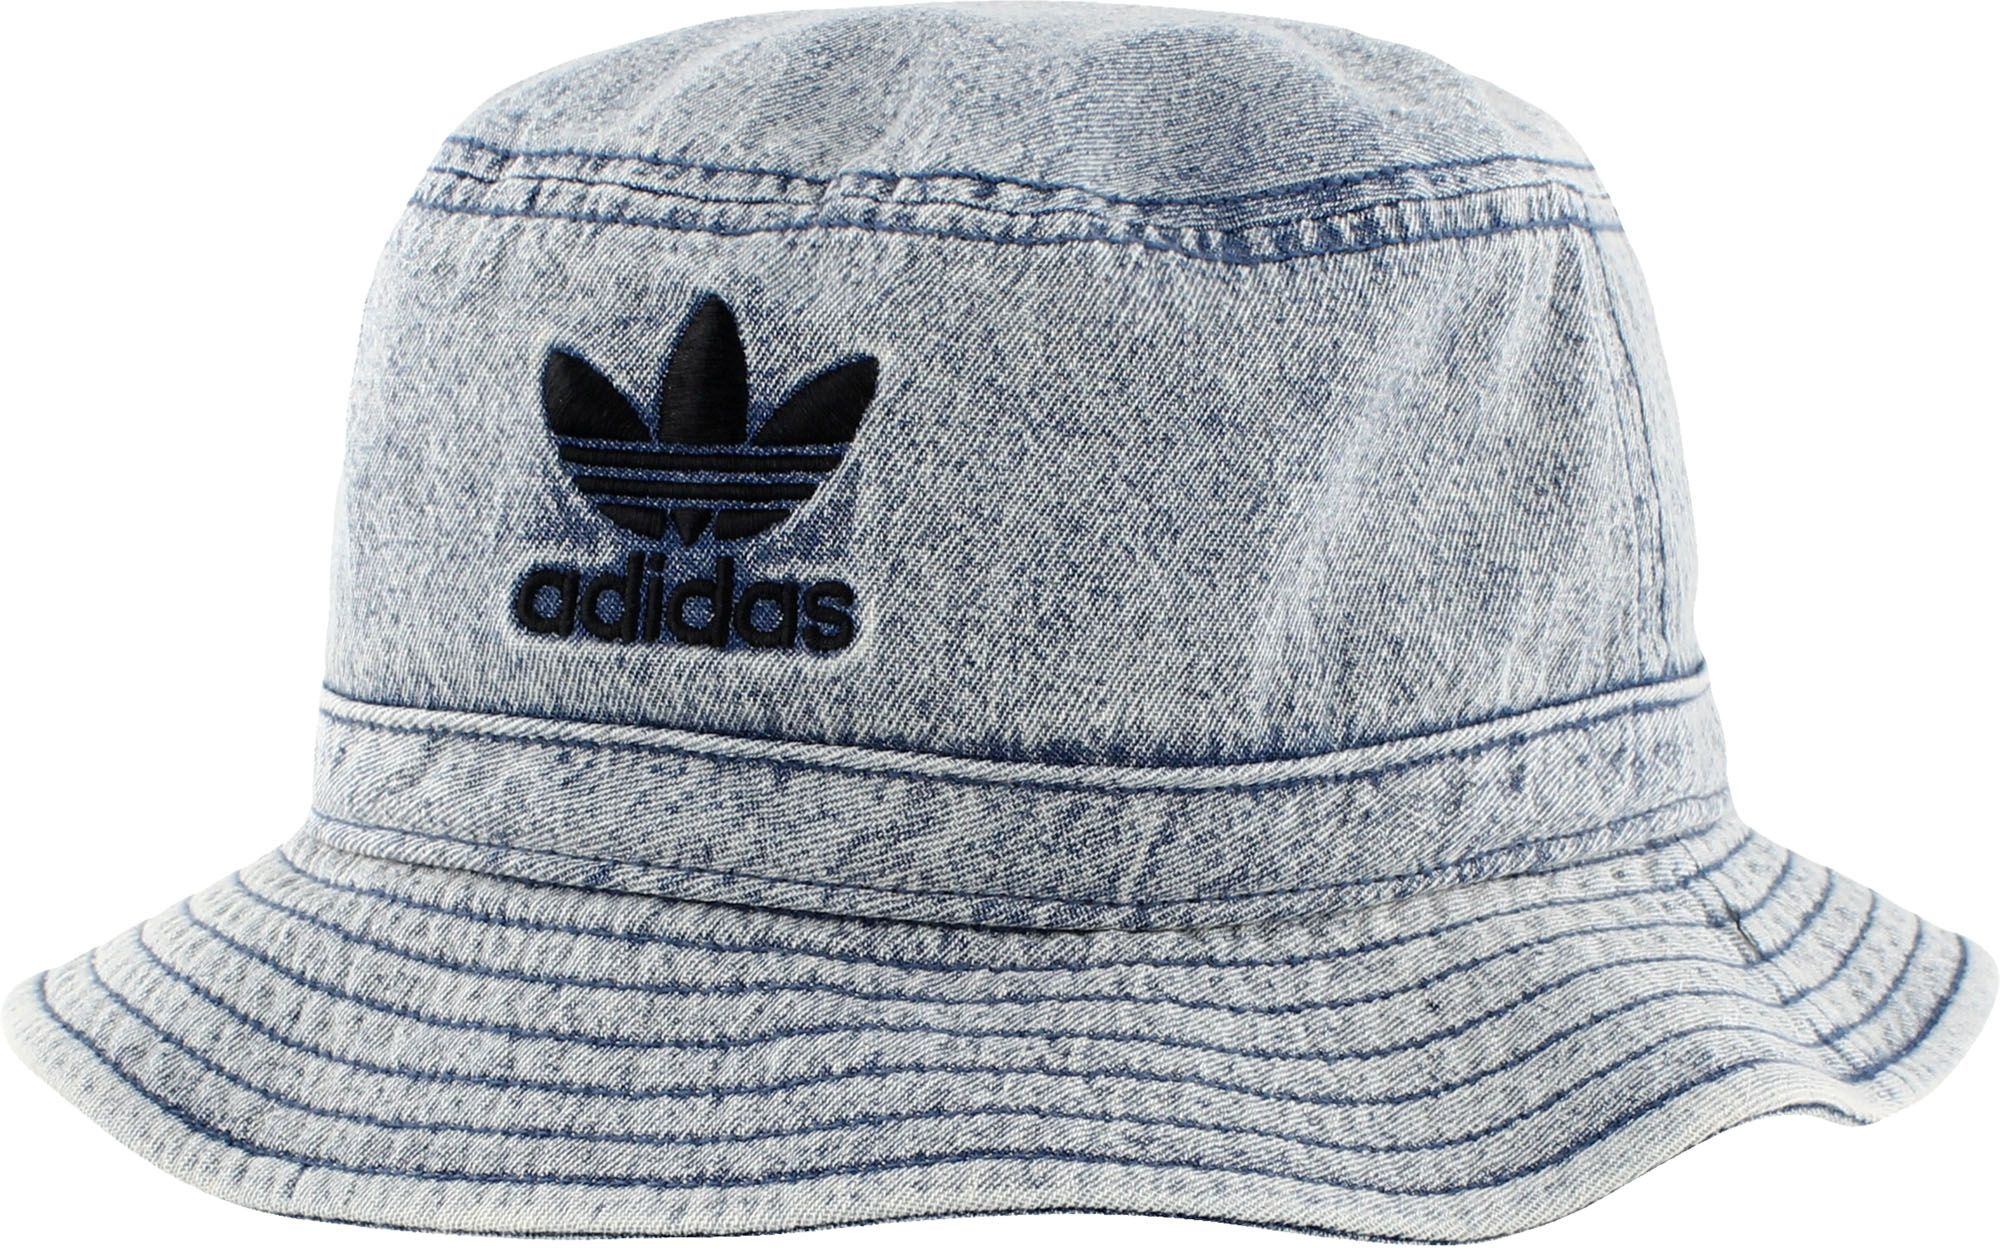 Adidas Originals Men's Denim Bucket Hat by Adidas